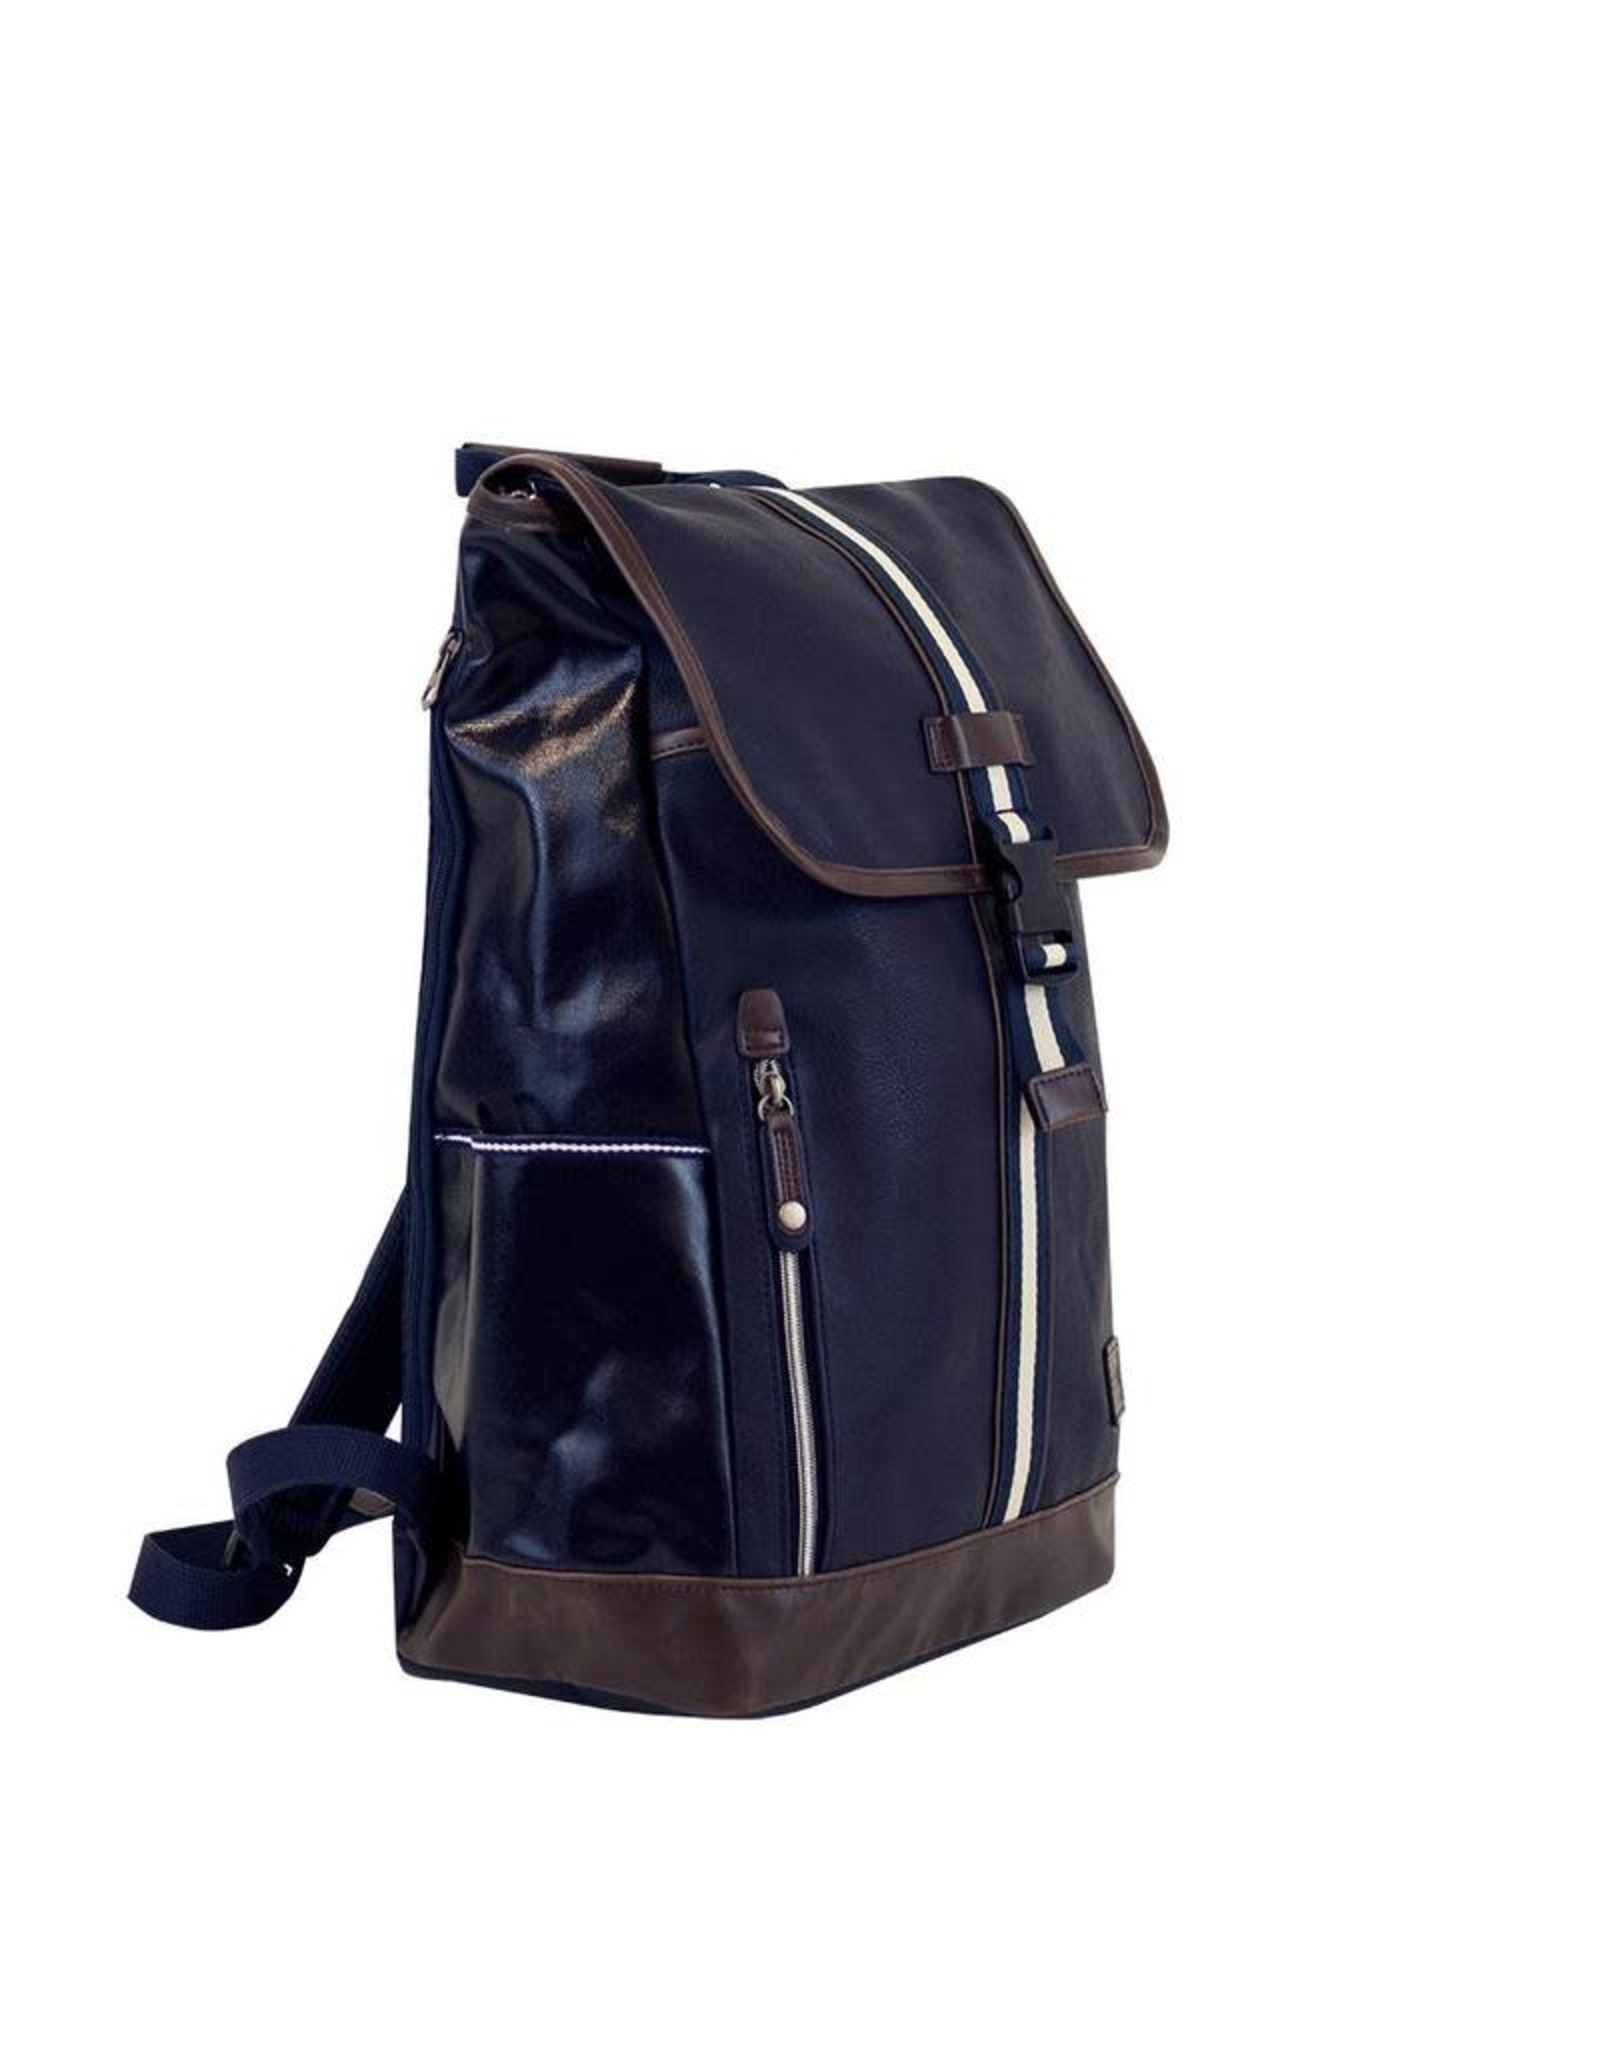 Molla Space Portsman Flaptop Backpack in Navy